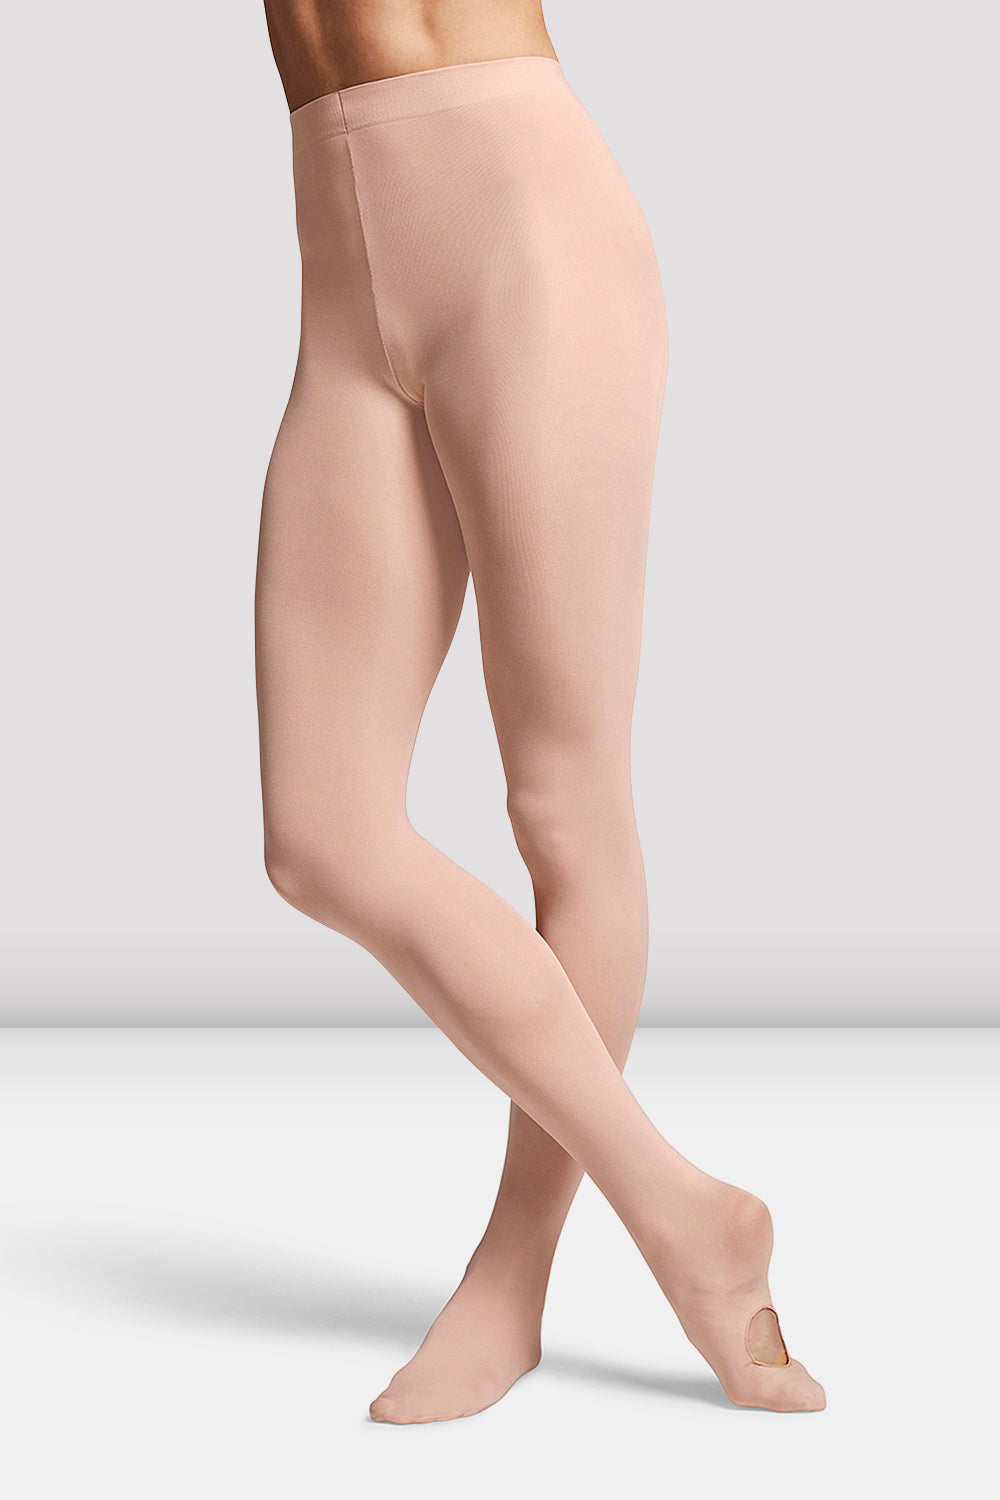 Girls Convertible Tights